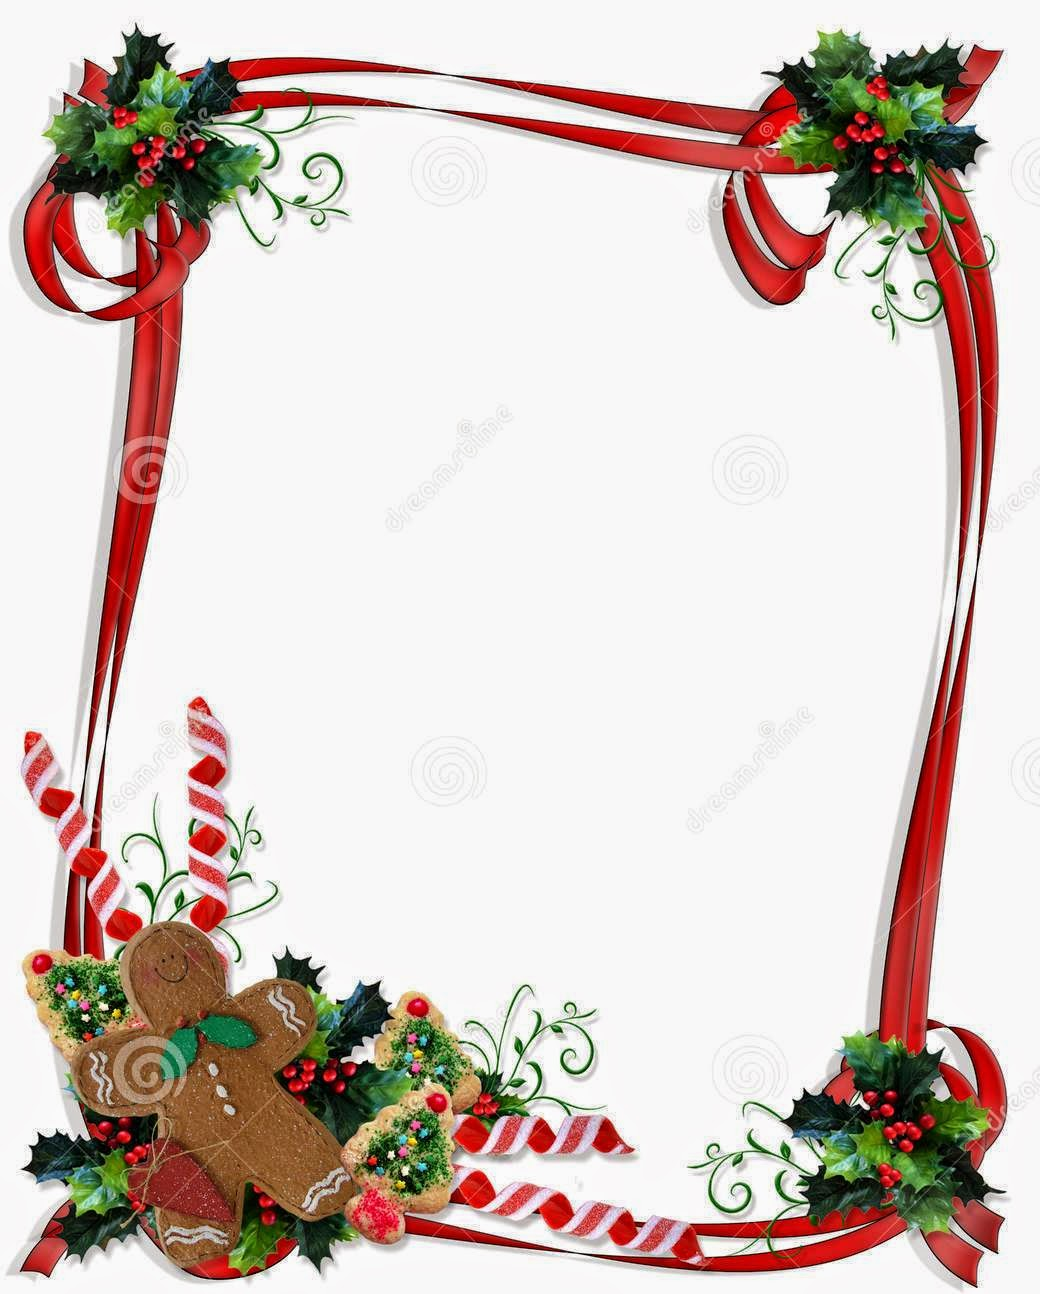 Christmas Images Clip Art ..